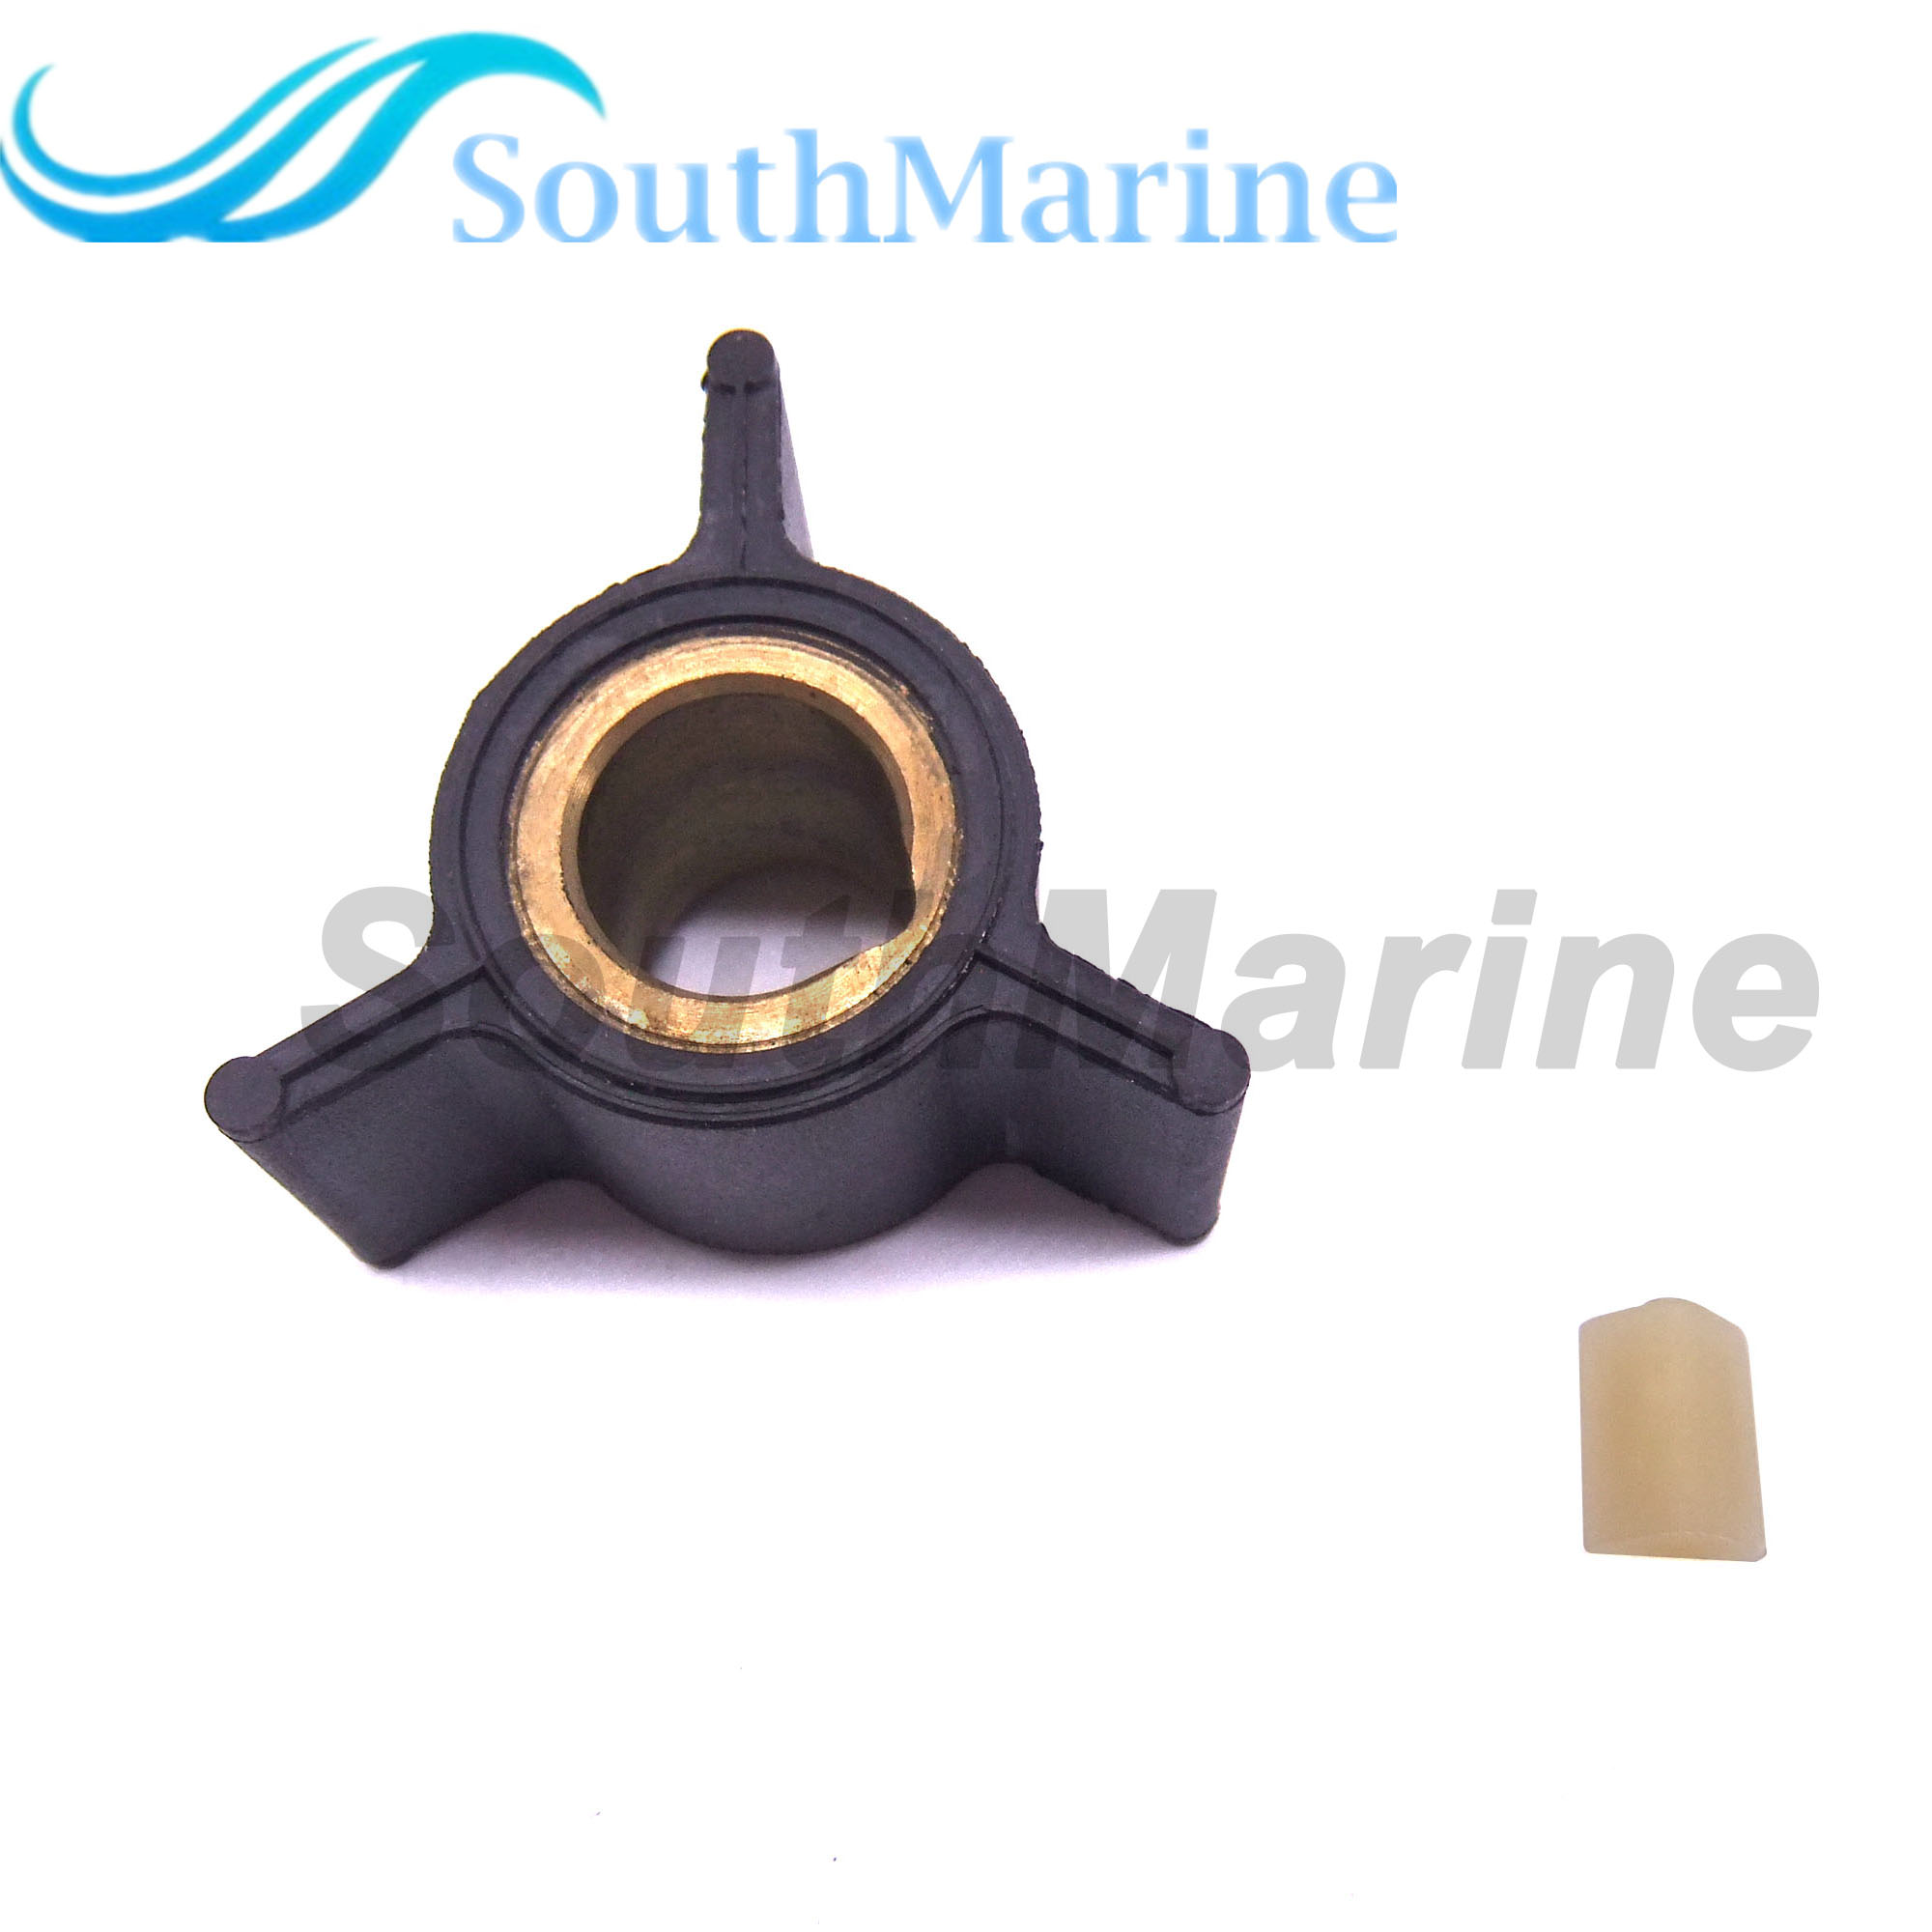 Automobiles & Motorcycles ... Other Veh. Parts & Access. ... 32251448968 ... 2 ... Boat Motor Impeller 433935 433915  396852 for Johnson Evinrude OMC BRP 2HP 3HP 4HP Outboard Motors Water Pump Parts ...